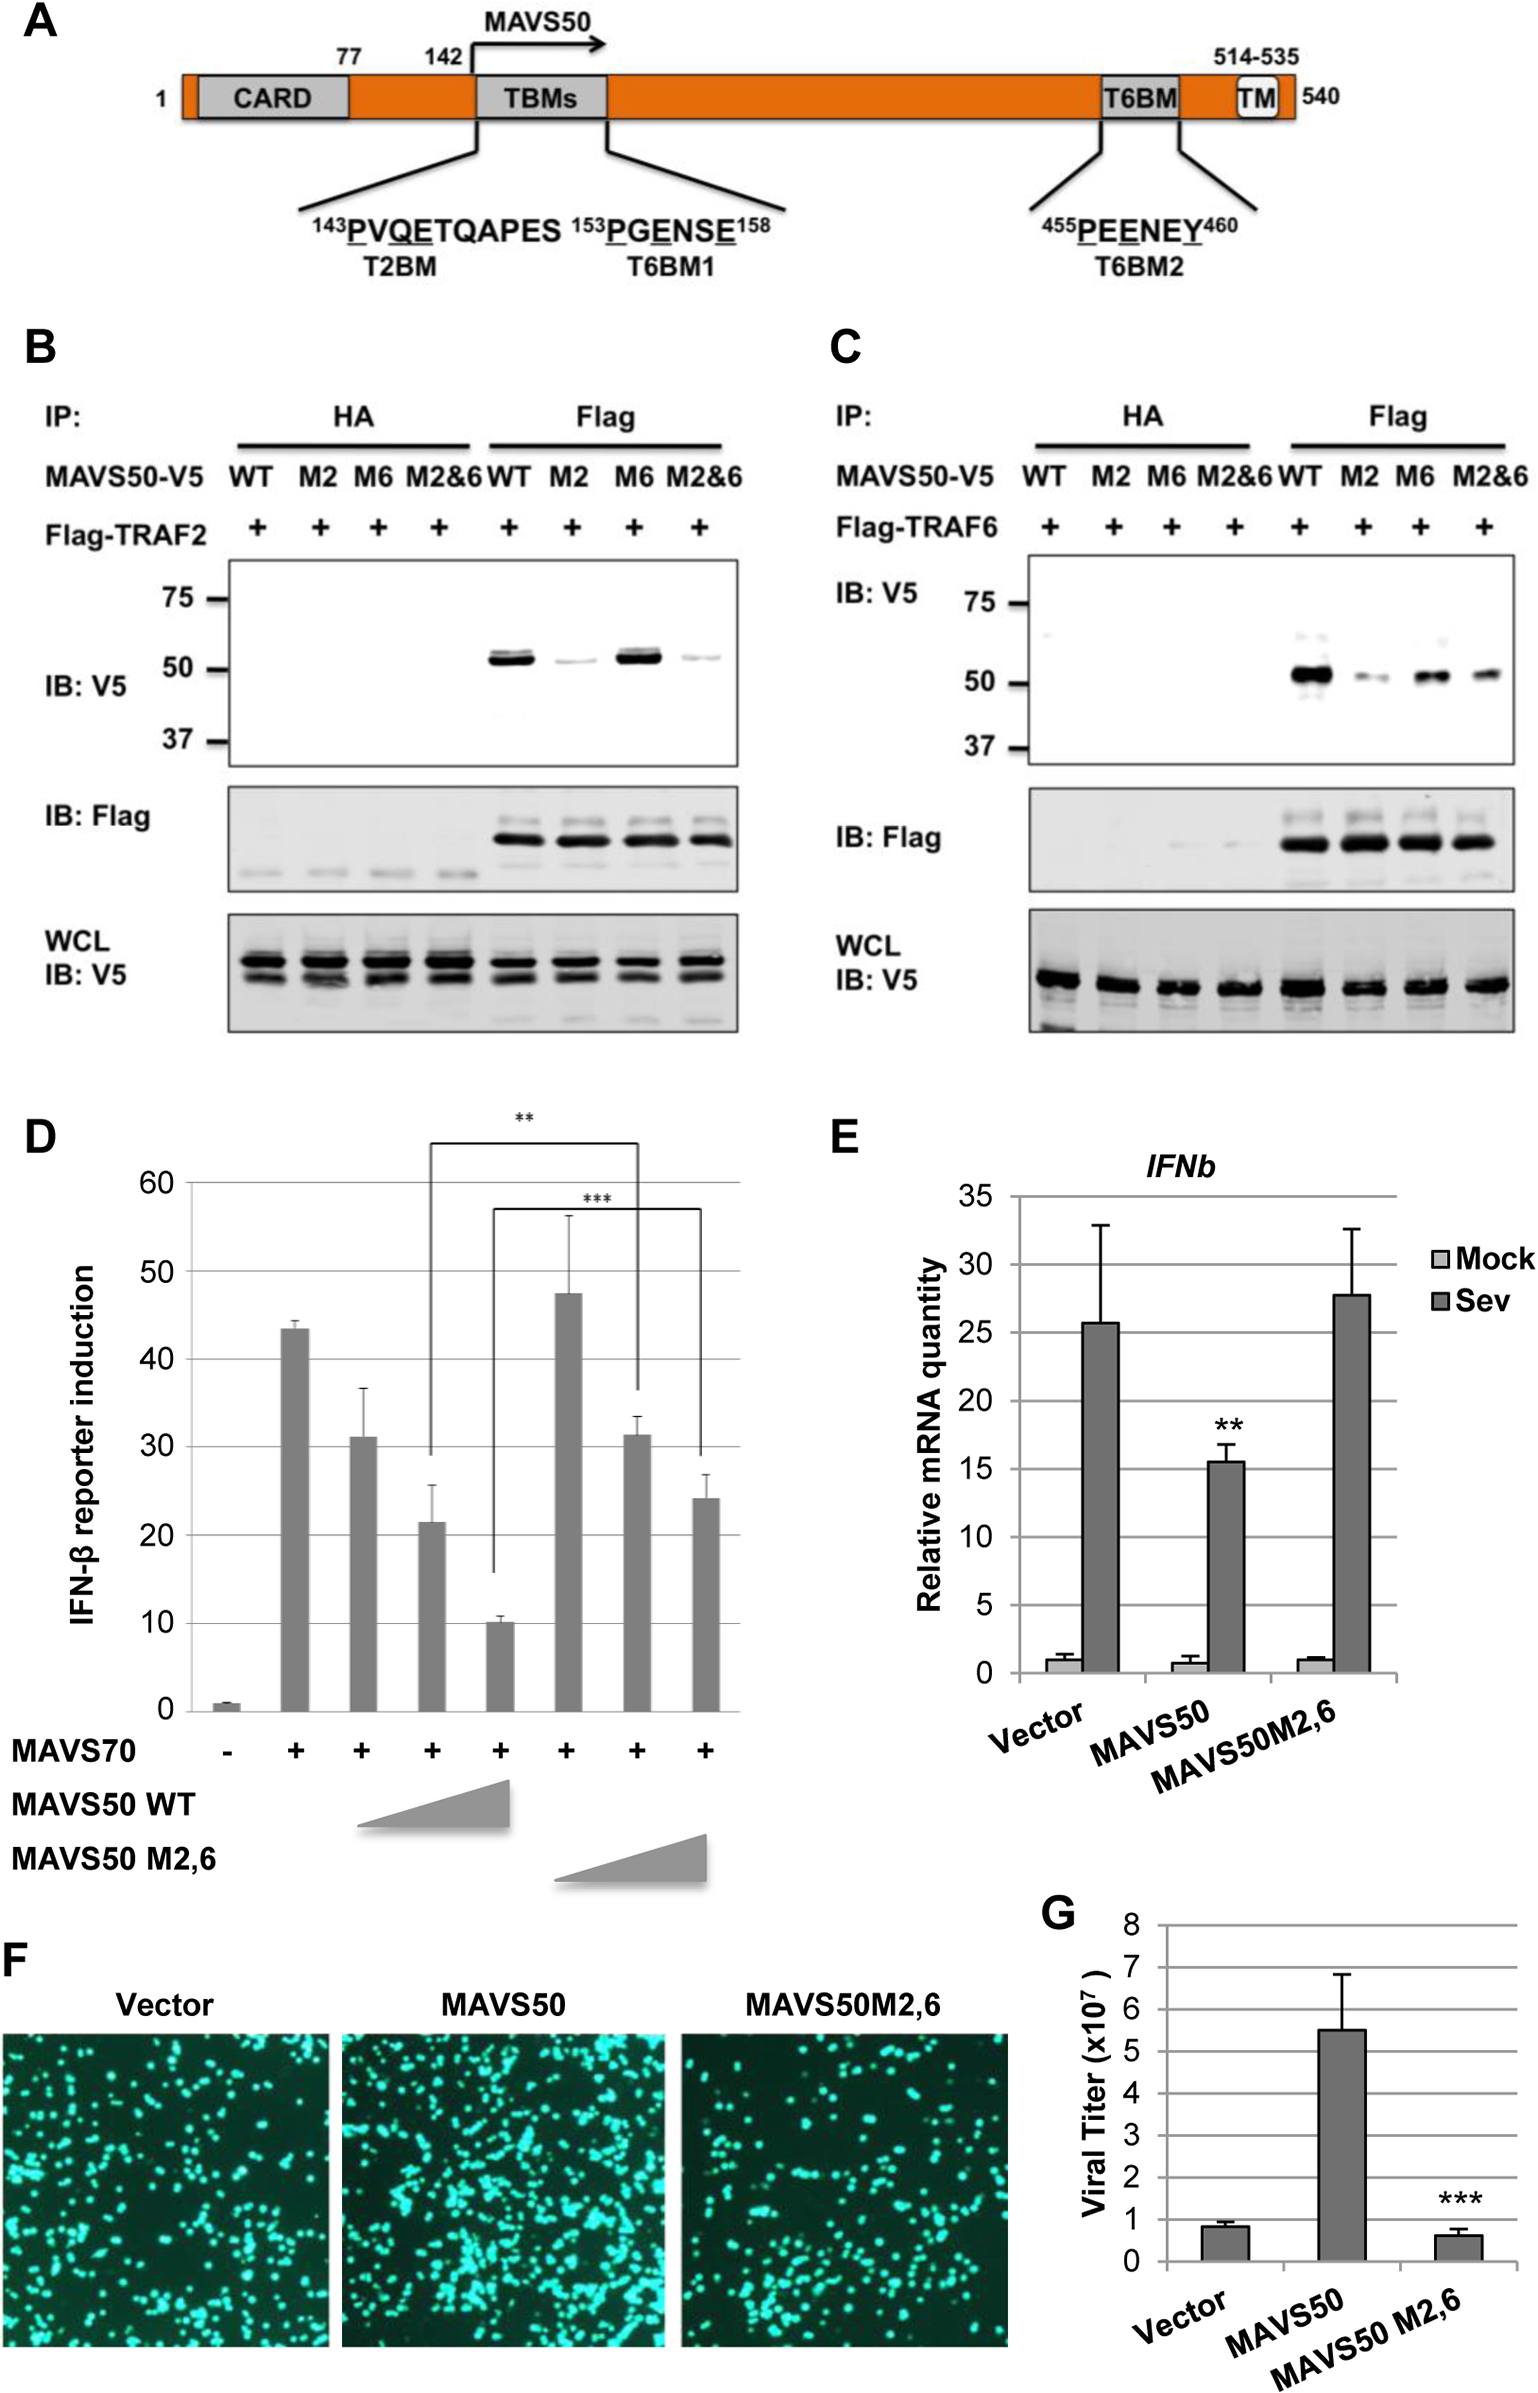 The N-terminal TRAF2-binding motif is critical for MAVS50 to inhibit IFN induction.